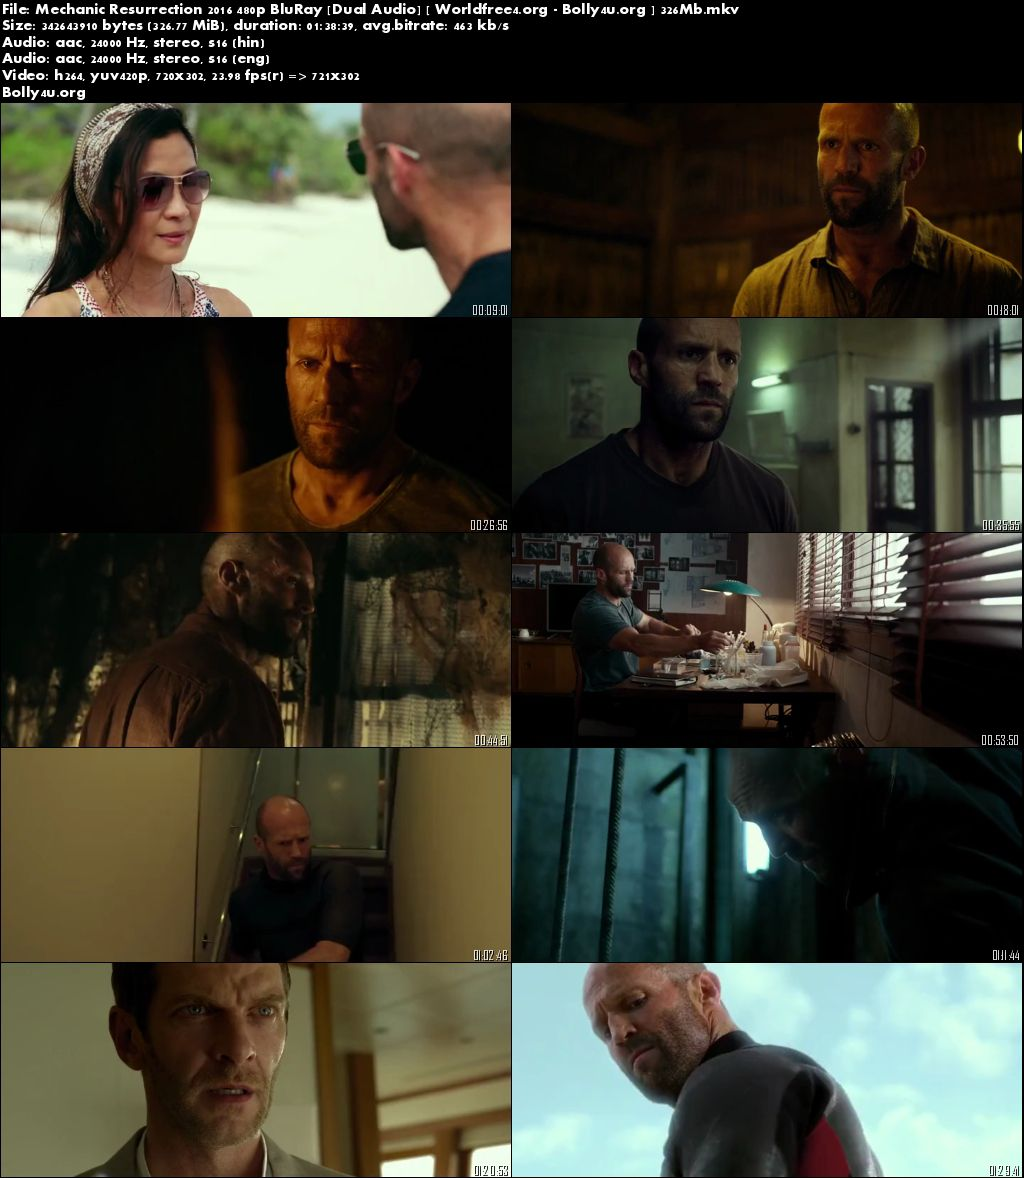 Mechanic Resurrection 2016 BRRip Dual Audio ORG 300Mb 480p Download